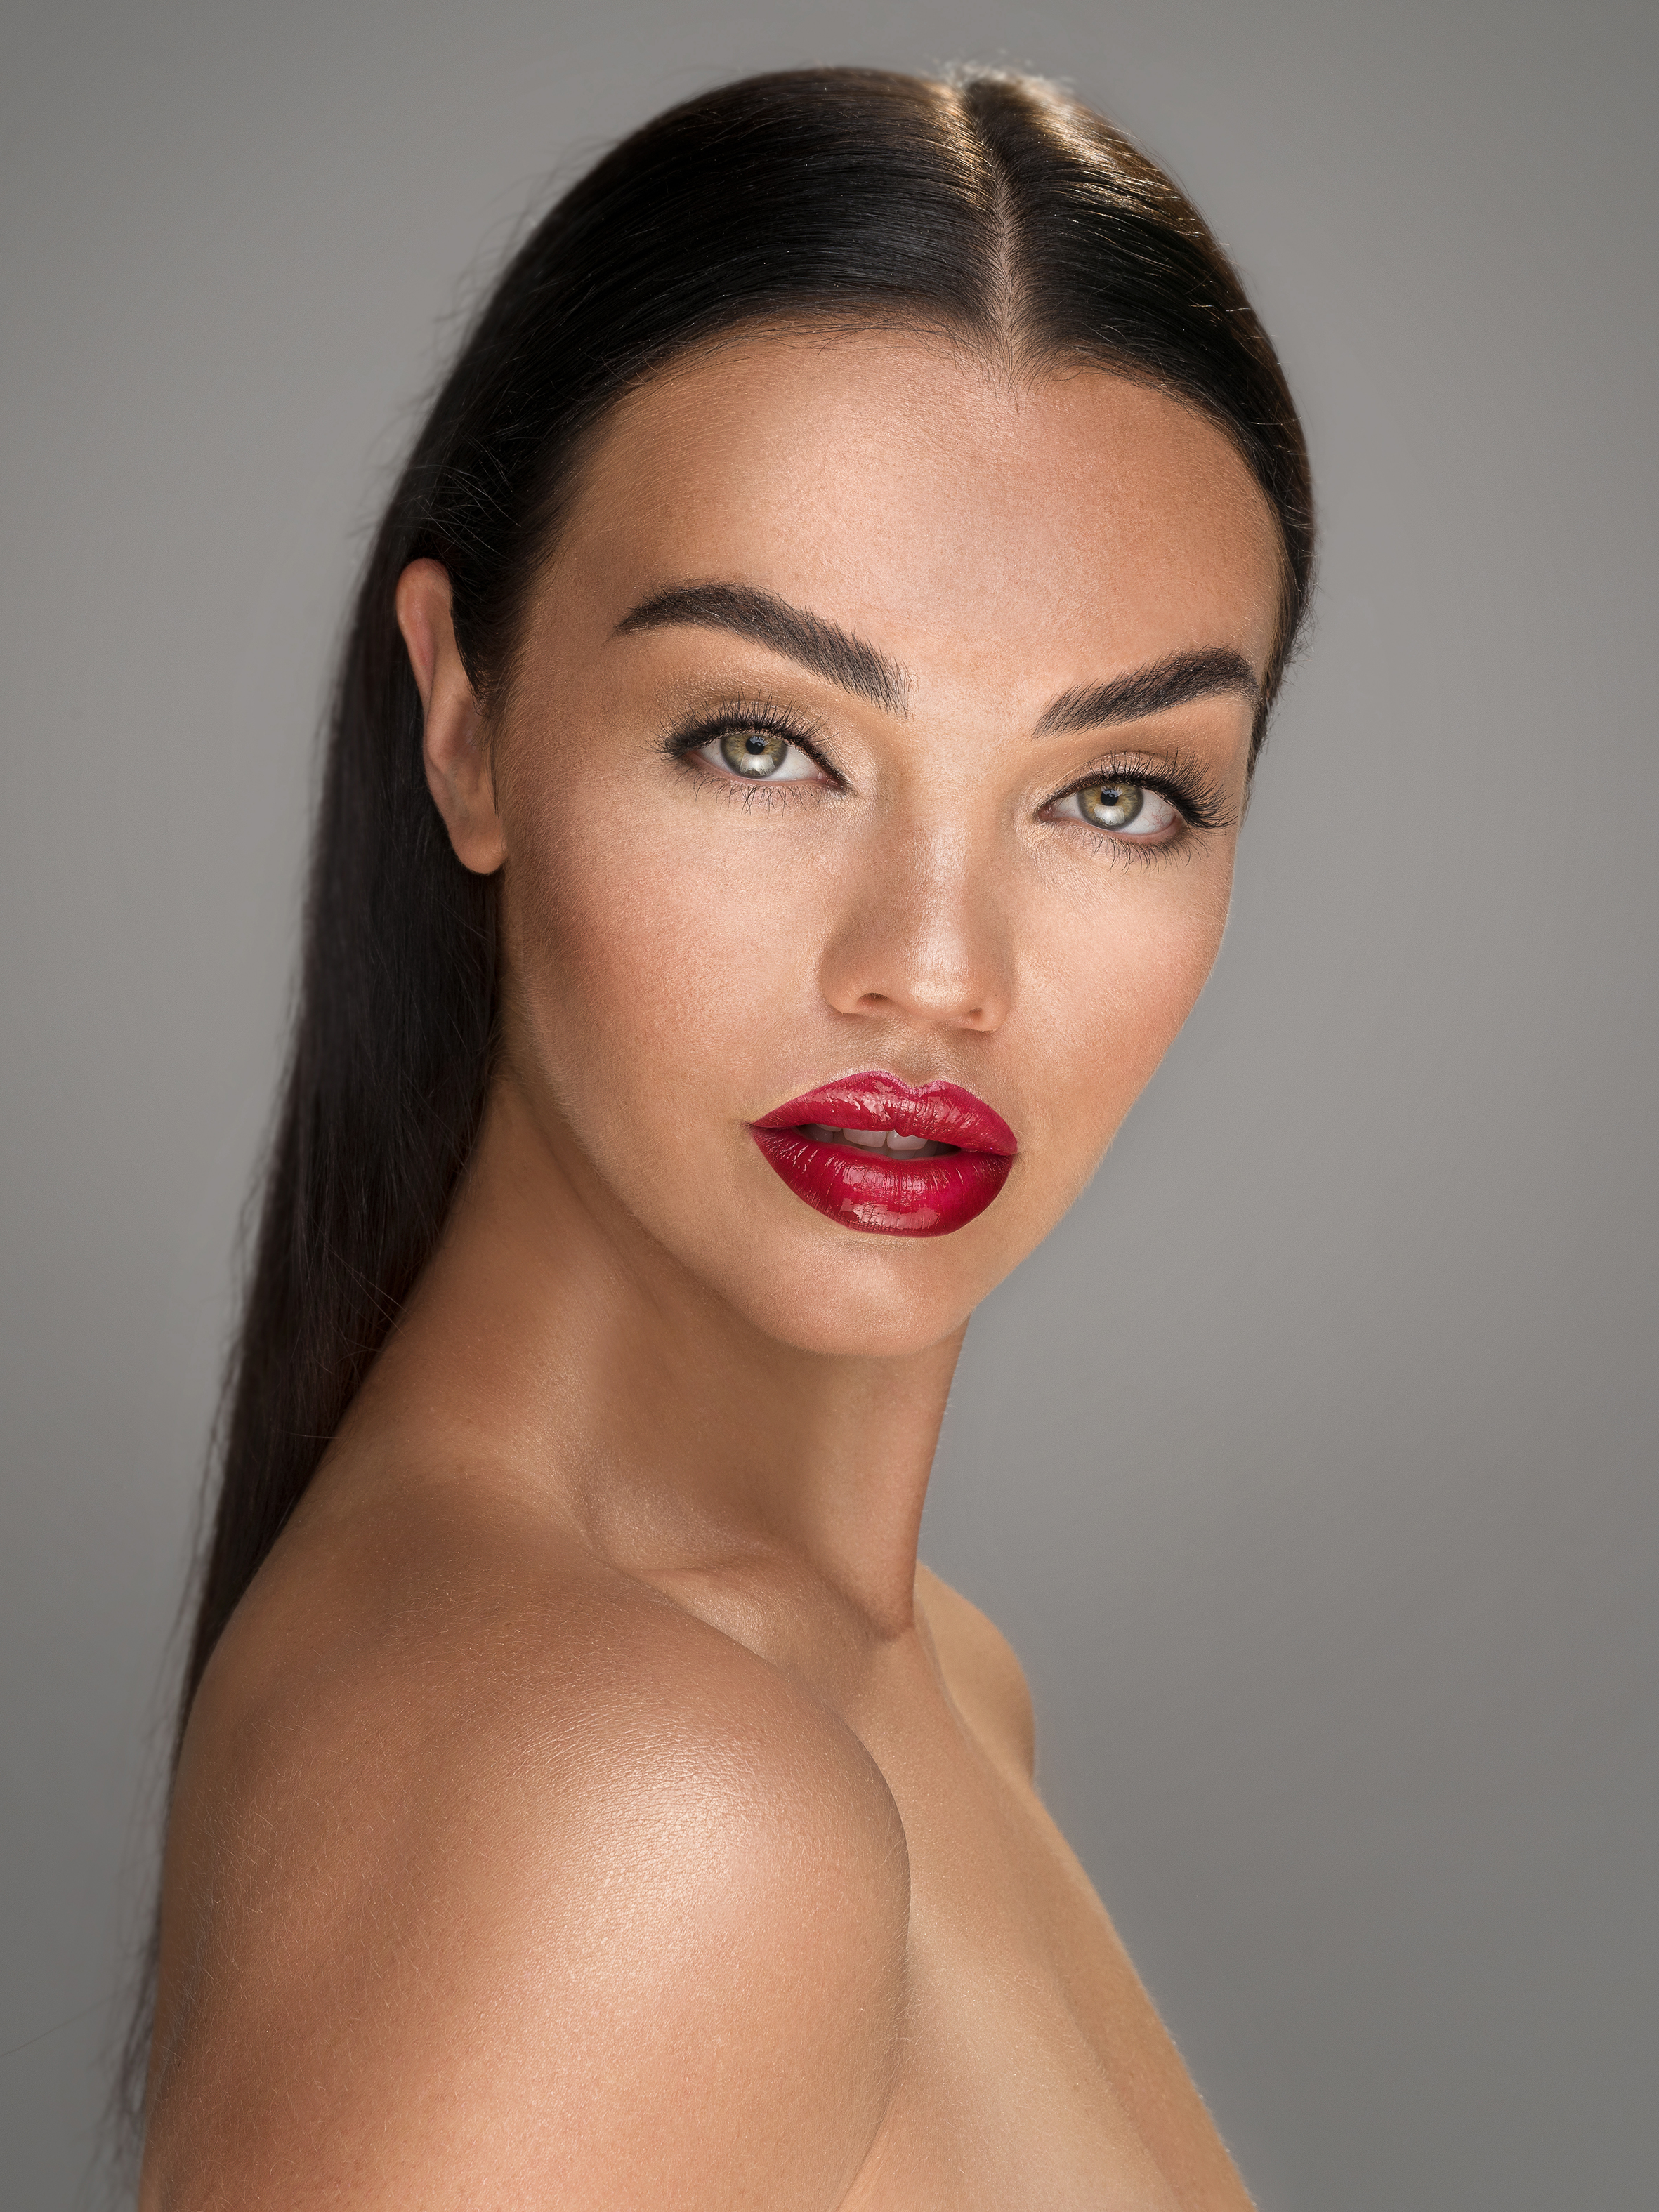 Natural Beauty Makeup with Glowing, Dewy, Highlighted Skin, Glossy Eyes and Red Lipstick. By Jaynelle Lording